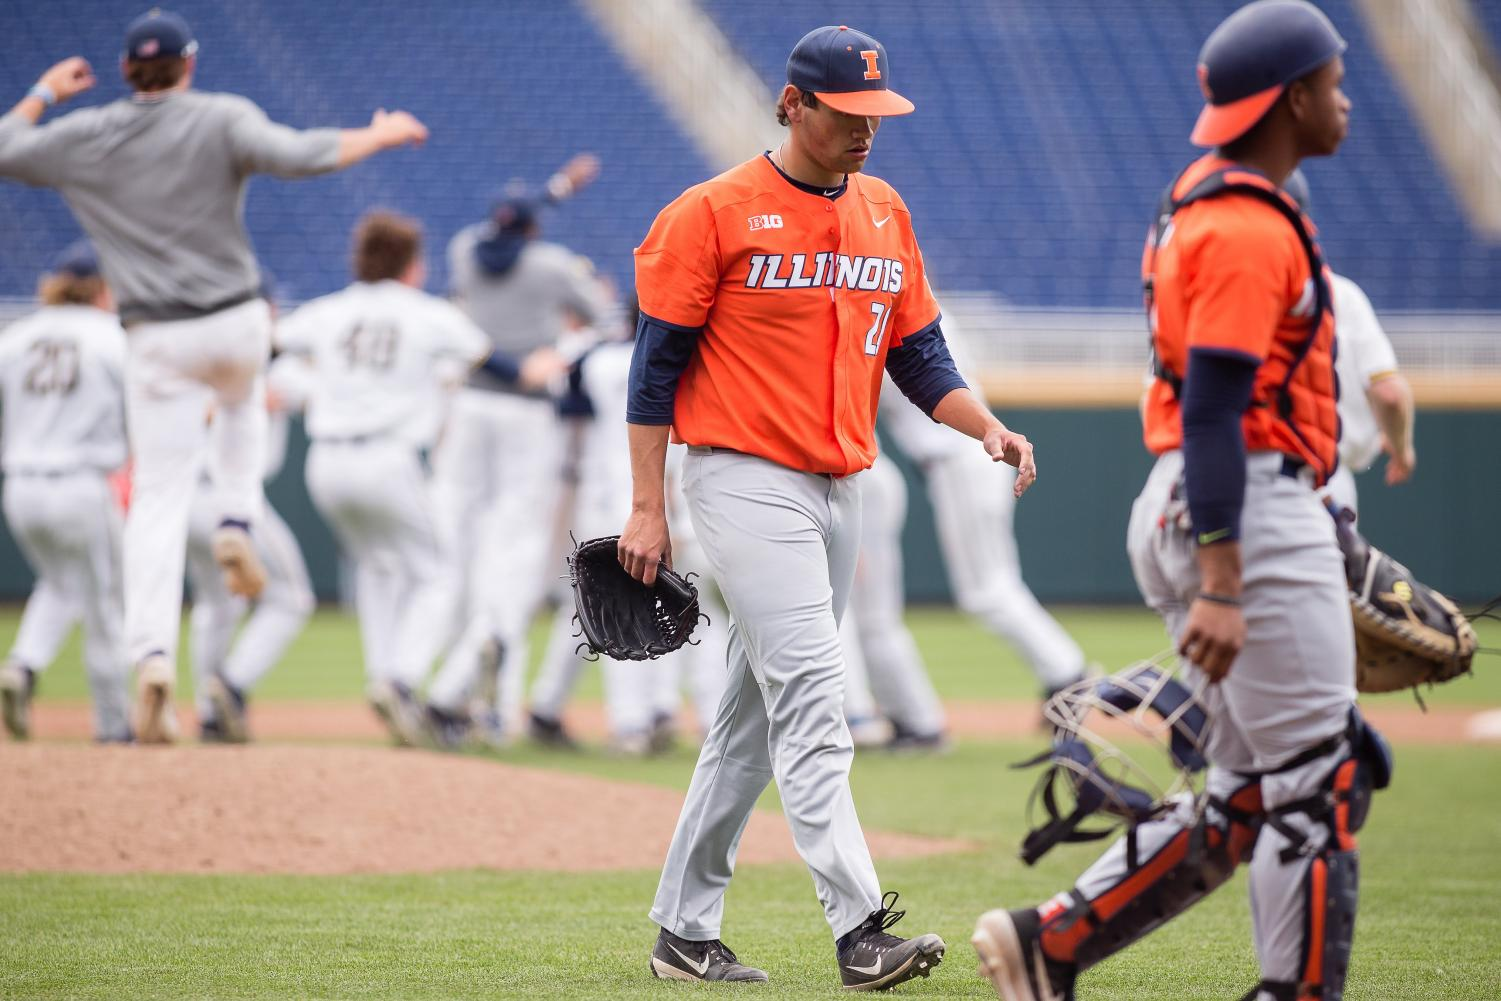 Illinois closing pitcher Garrett Acton (26) walks off the field after giving up a walk-off two-run double the game against Michigan in the Big Ten Tournament at TD Ameritrade Park on Thursday, May 23, 2019. The Illini lost 5-4. Photo by Austin Yattoni of The Daily Illini.